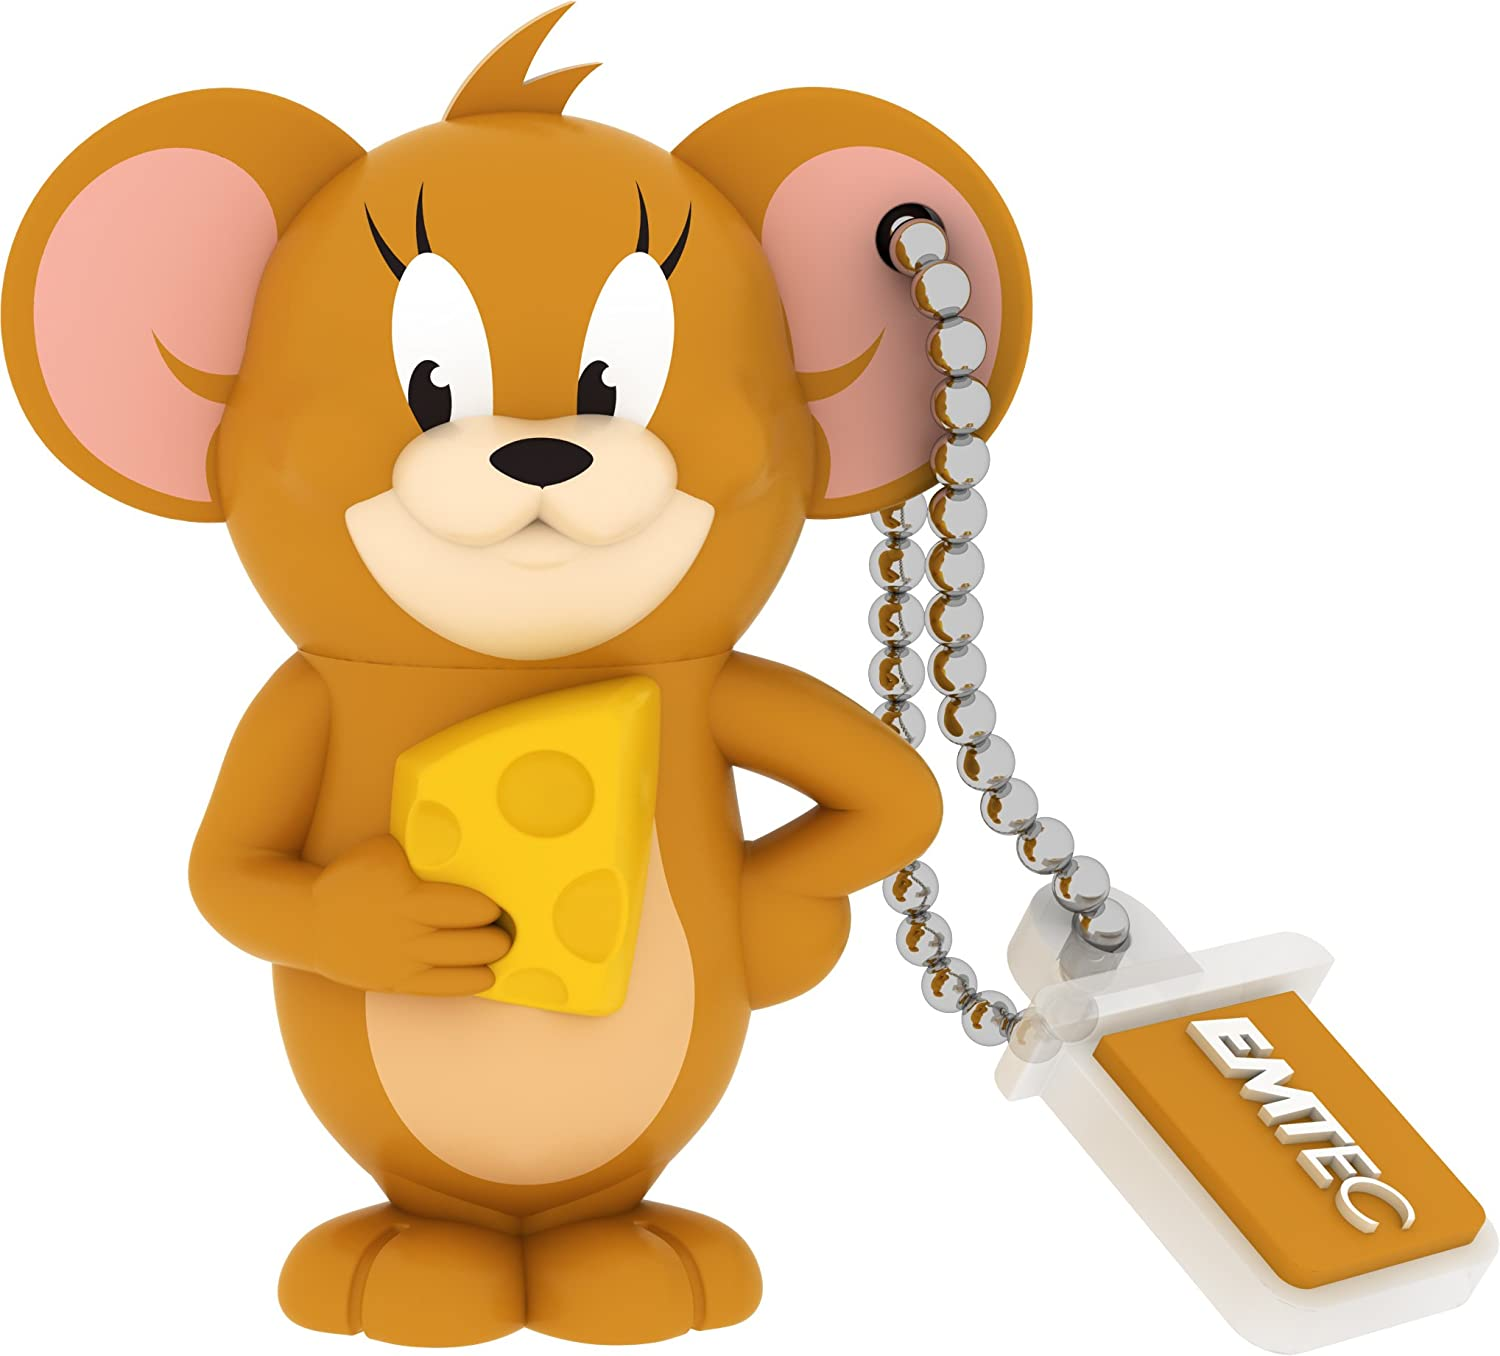 Tom and Jerry 8 GB USB 2.0 Flash Drive, Jerry